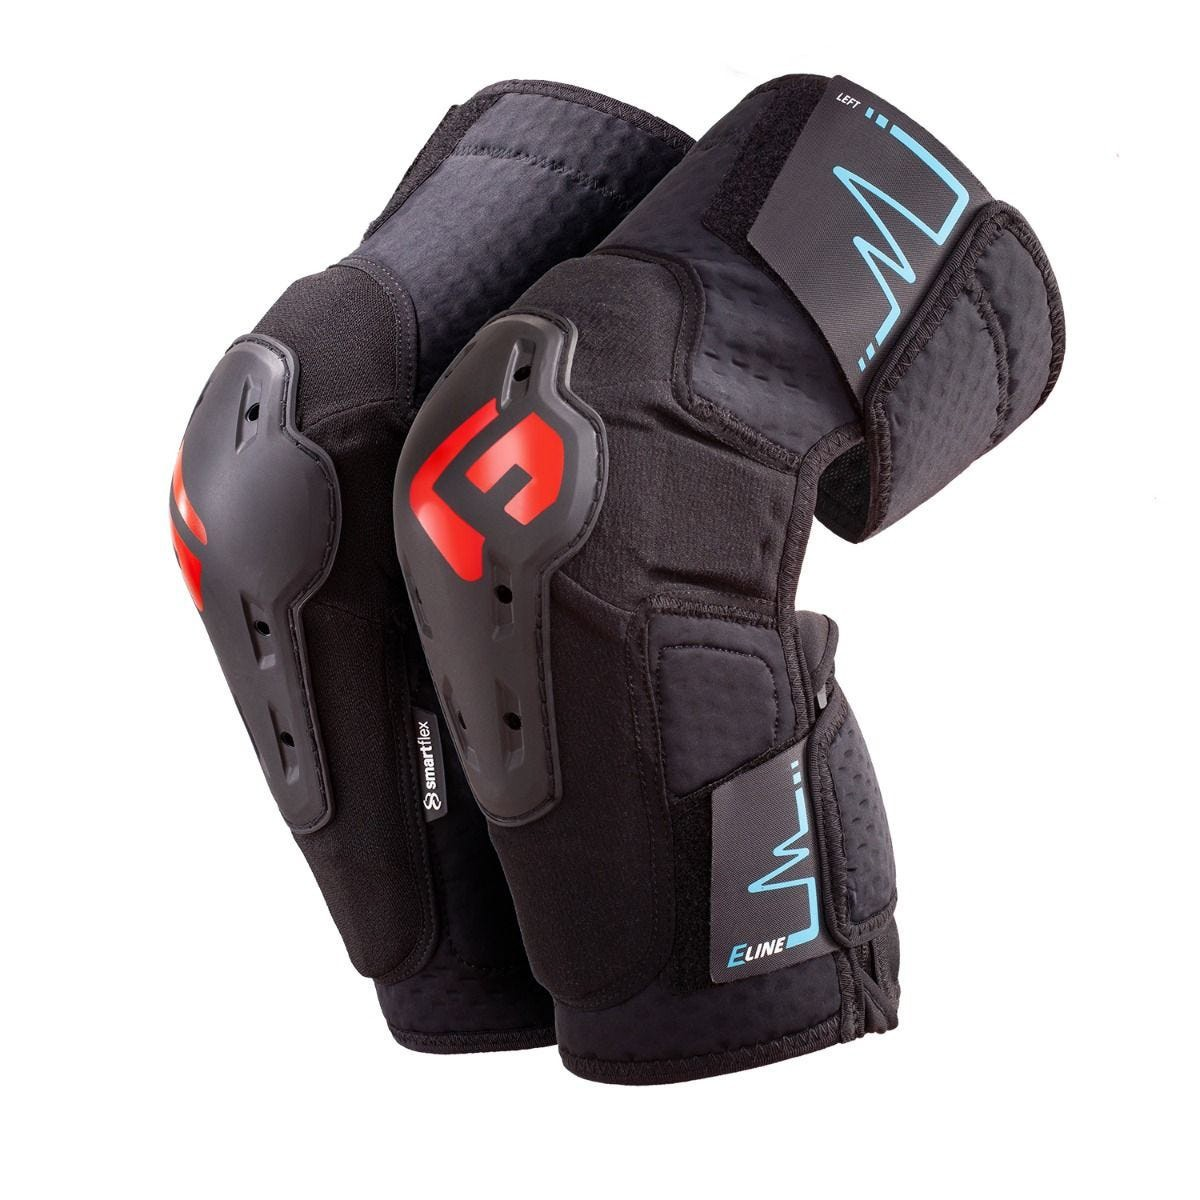 G-FORM E-LINE KNEE GUARDS